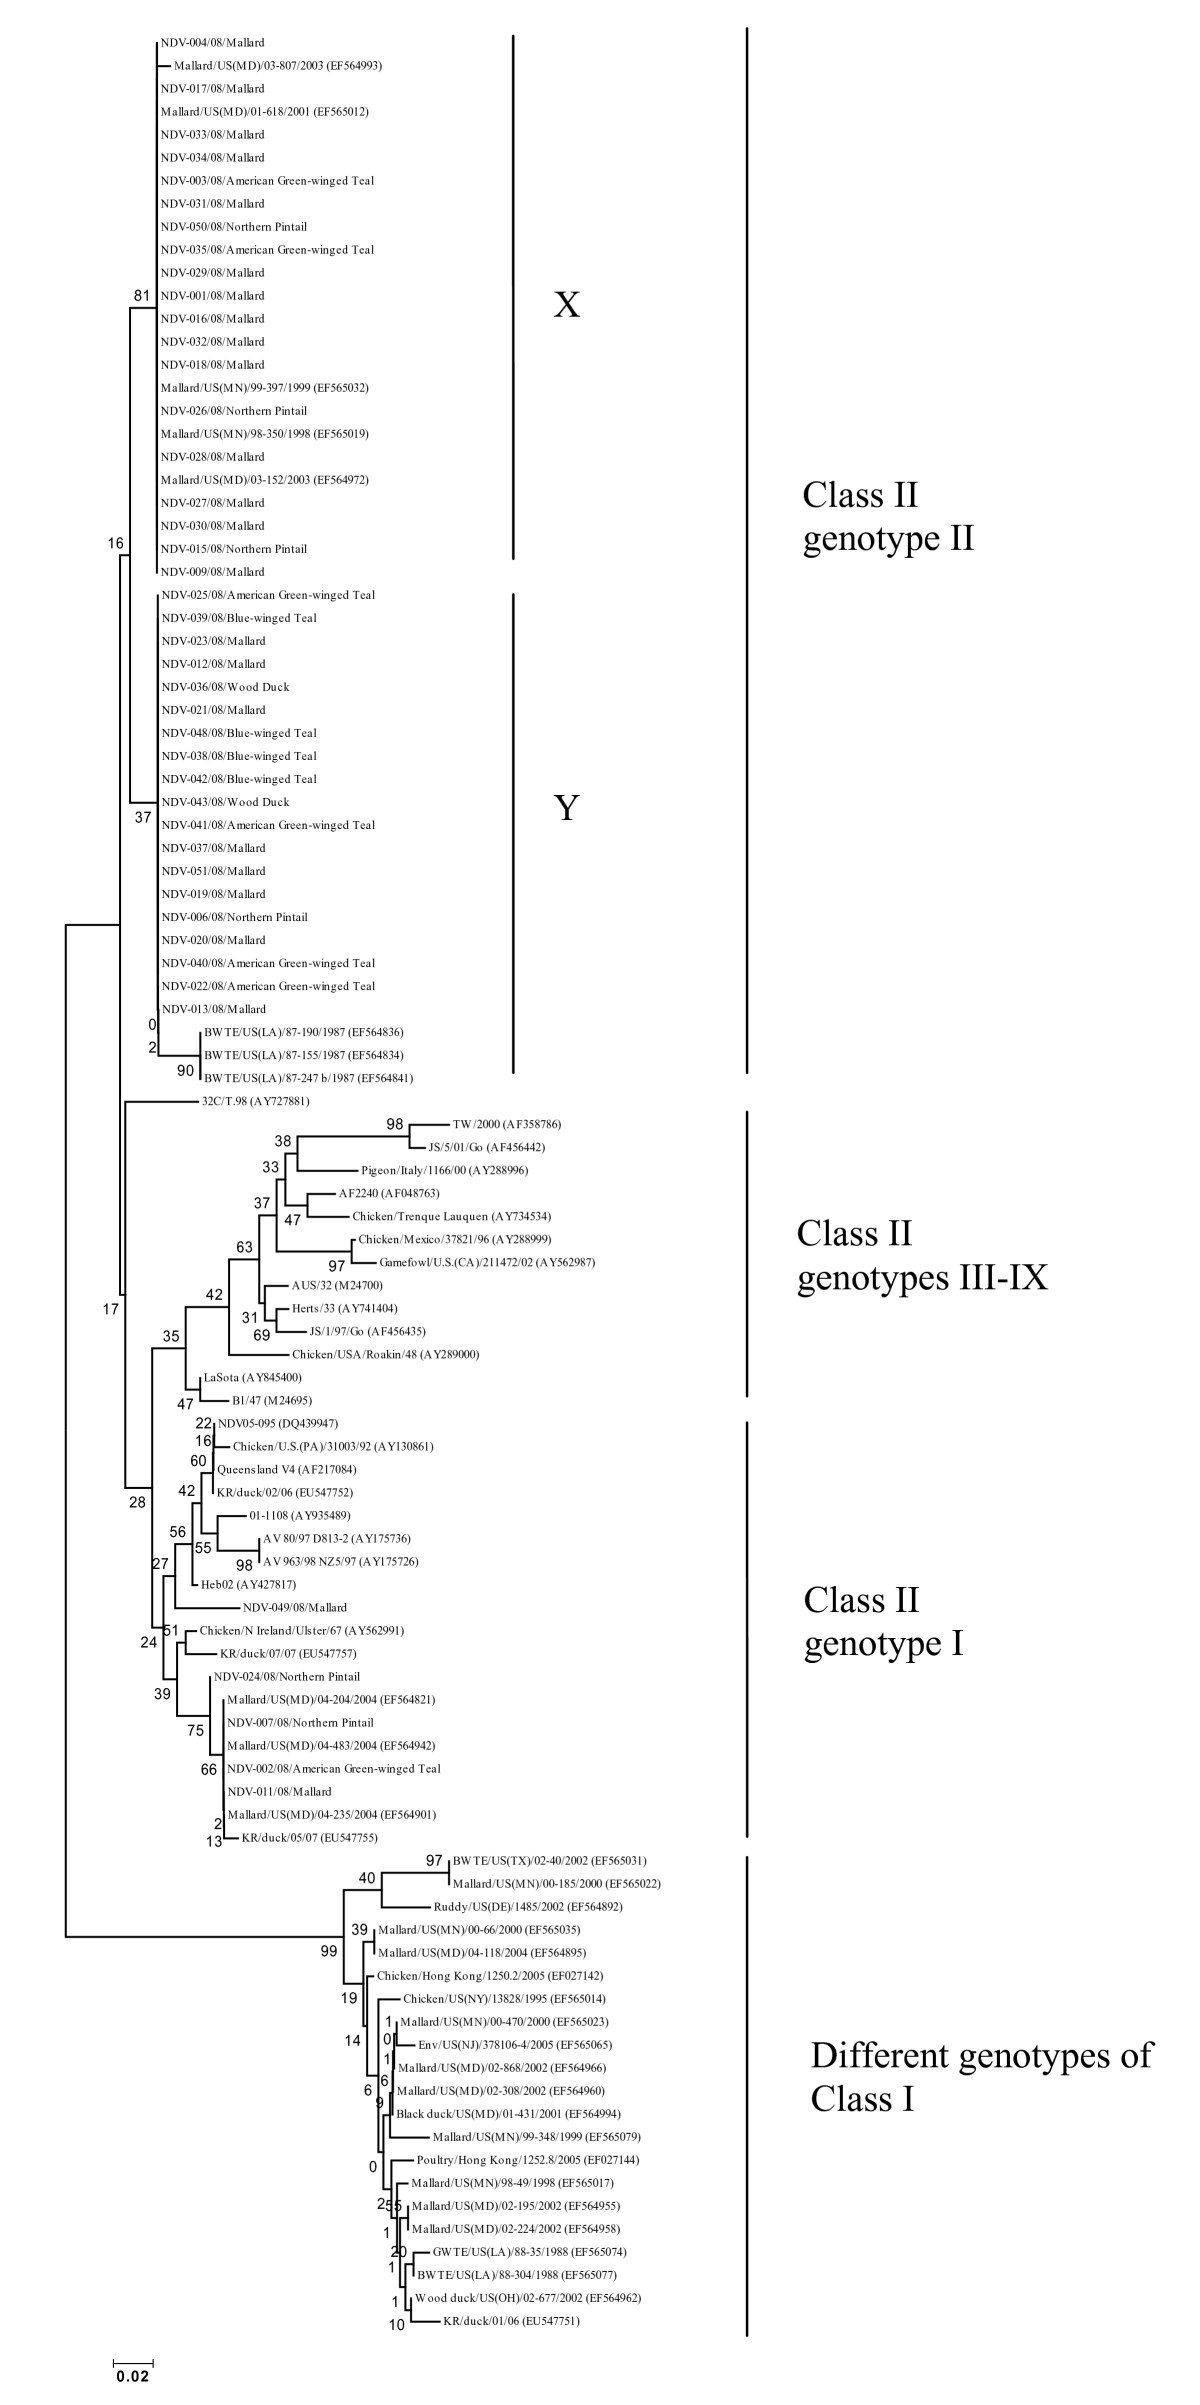 http://static-content.springer.com/image/art%3A10.1186%2F1743-422X-6-191/MediaObjects/12985_2009_Article_705_Fig1_HTML.jpg